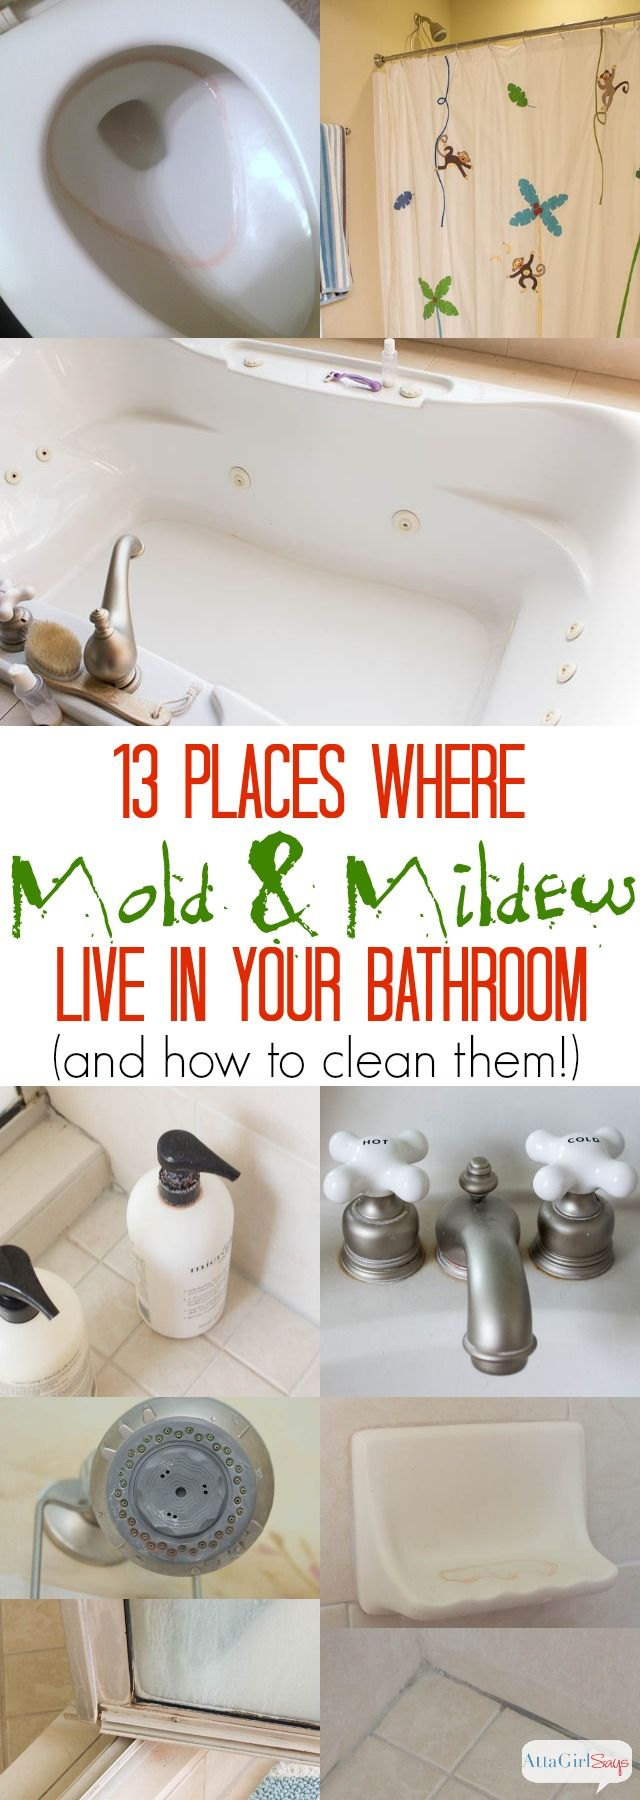 How to clean mold and mildew in the bathroom without scrubbing diy ideas pinterest for How to get rid of surface mold in bathroom